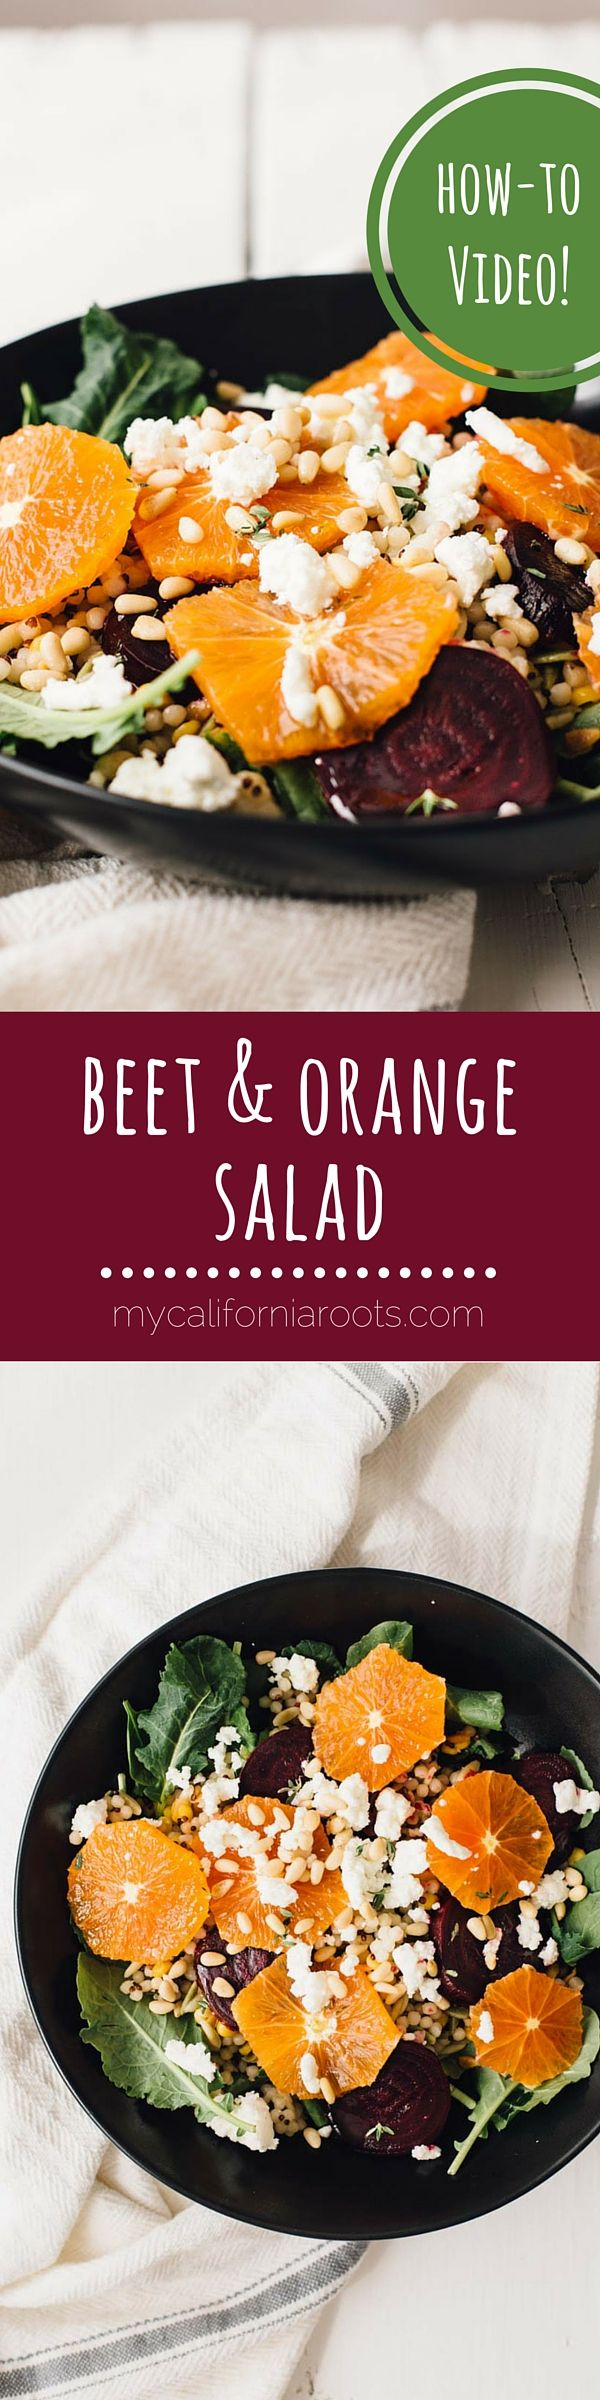 This beet, orange & goat cheese salad is super simple but looks so fancy! Perfect for a party where you want to impress without too much work!